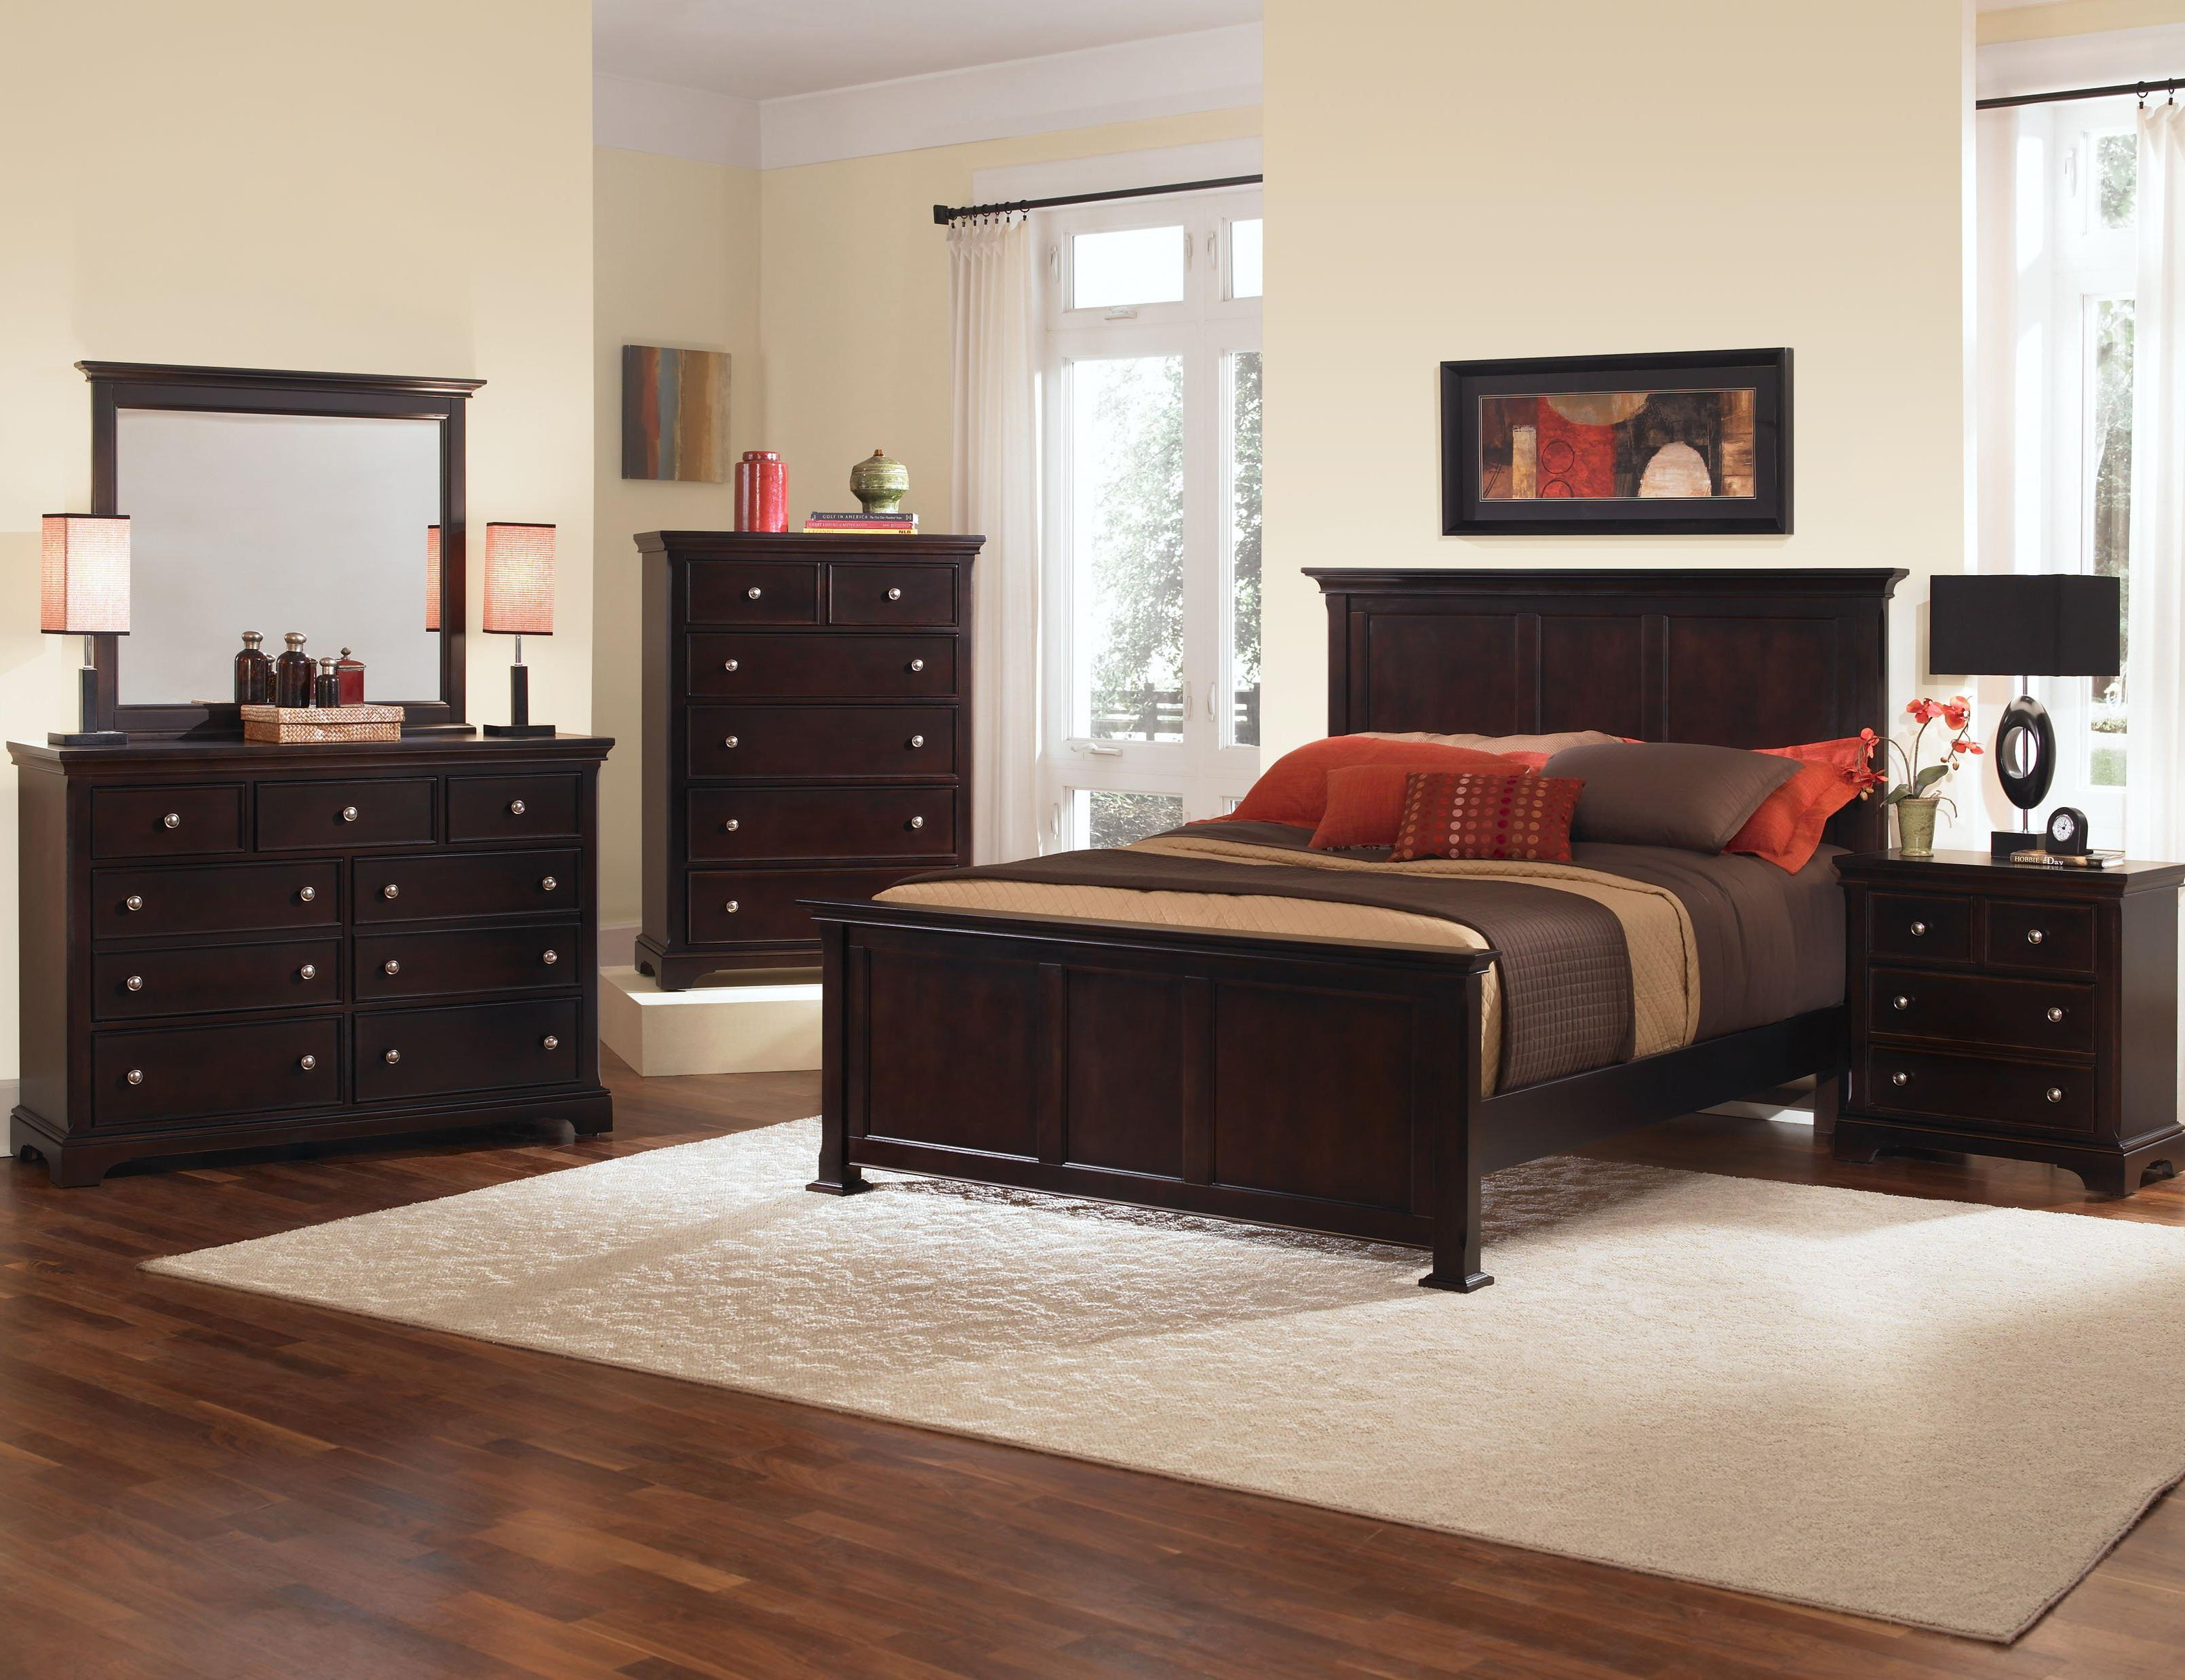 cook brothers bedroom sets images home interior design